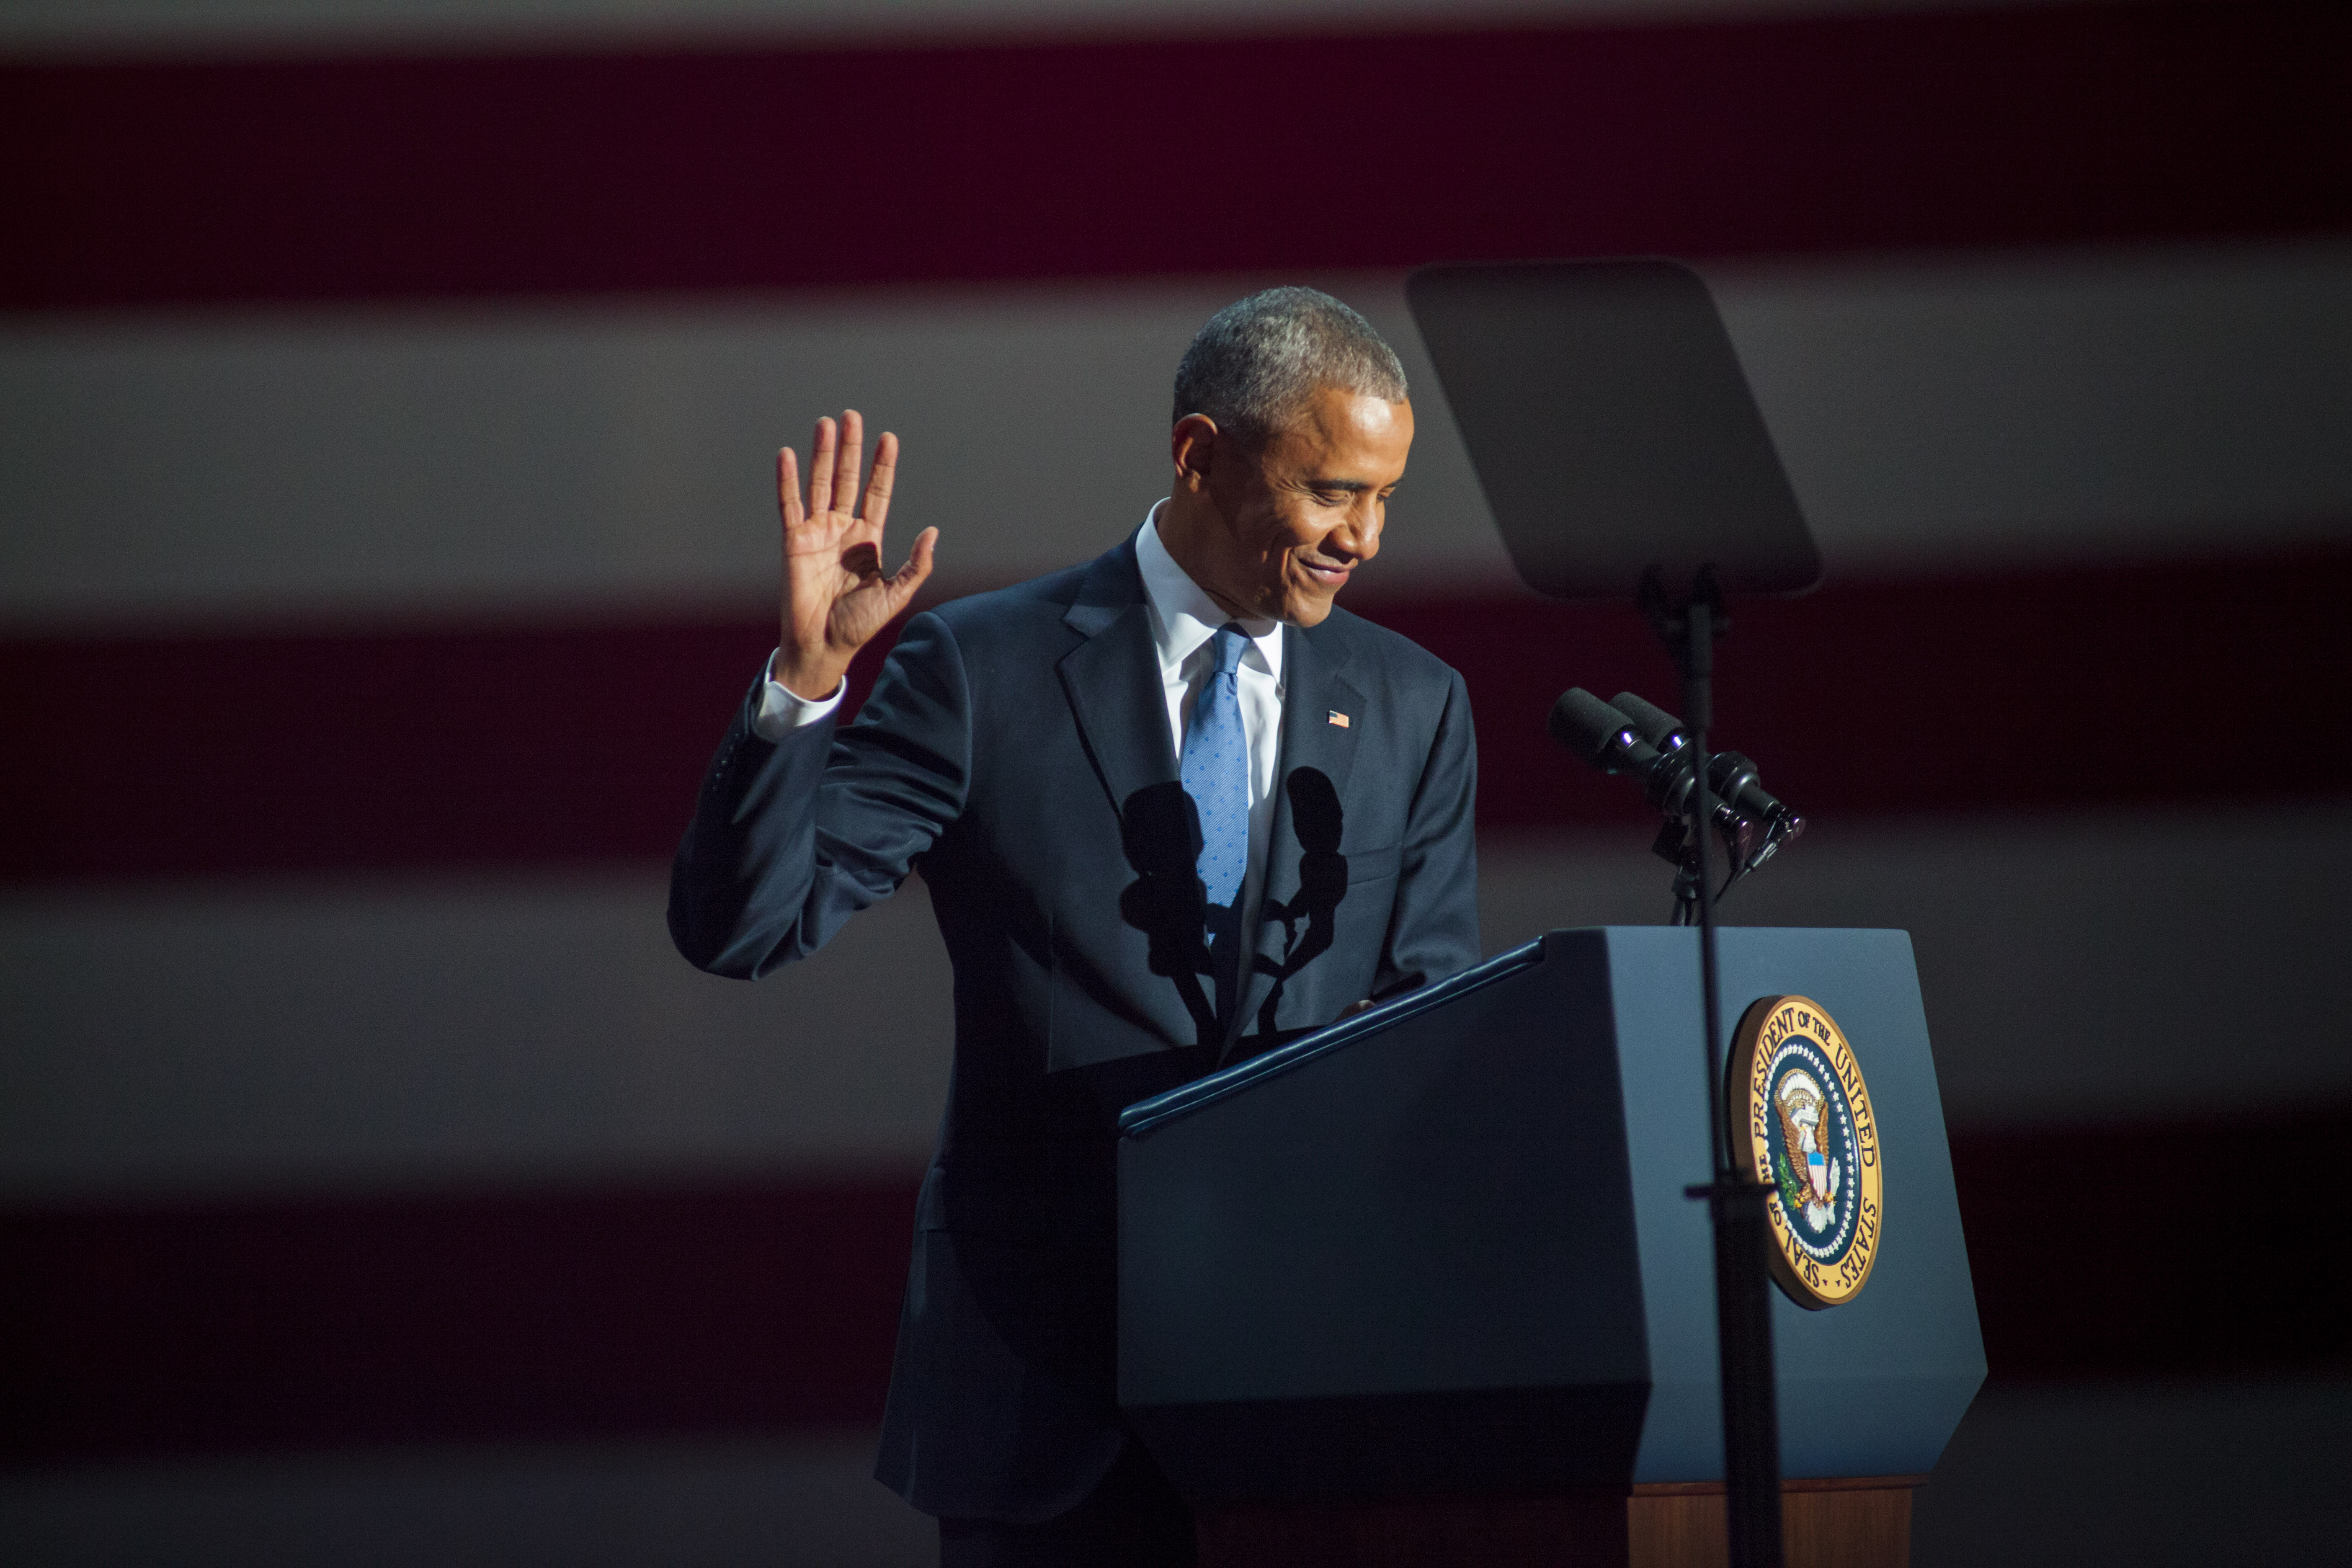 CHICAGO, IL - JANUARY 10: U.S. President Barack Obama gives his farewell speech at McCormick Place on January 10, 2017 in Chicago, Illinois. Obama addressed the nation in what is expected to be his last trip outside Washington as president. President-elect Donald Trump will be sworn in as the 45th president on January 20. (Photo by Darren Hauck/Getty Images)